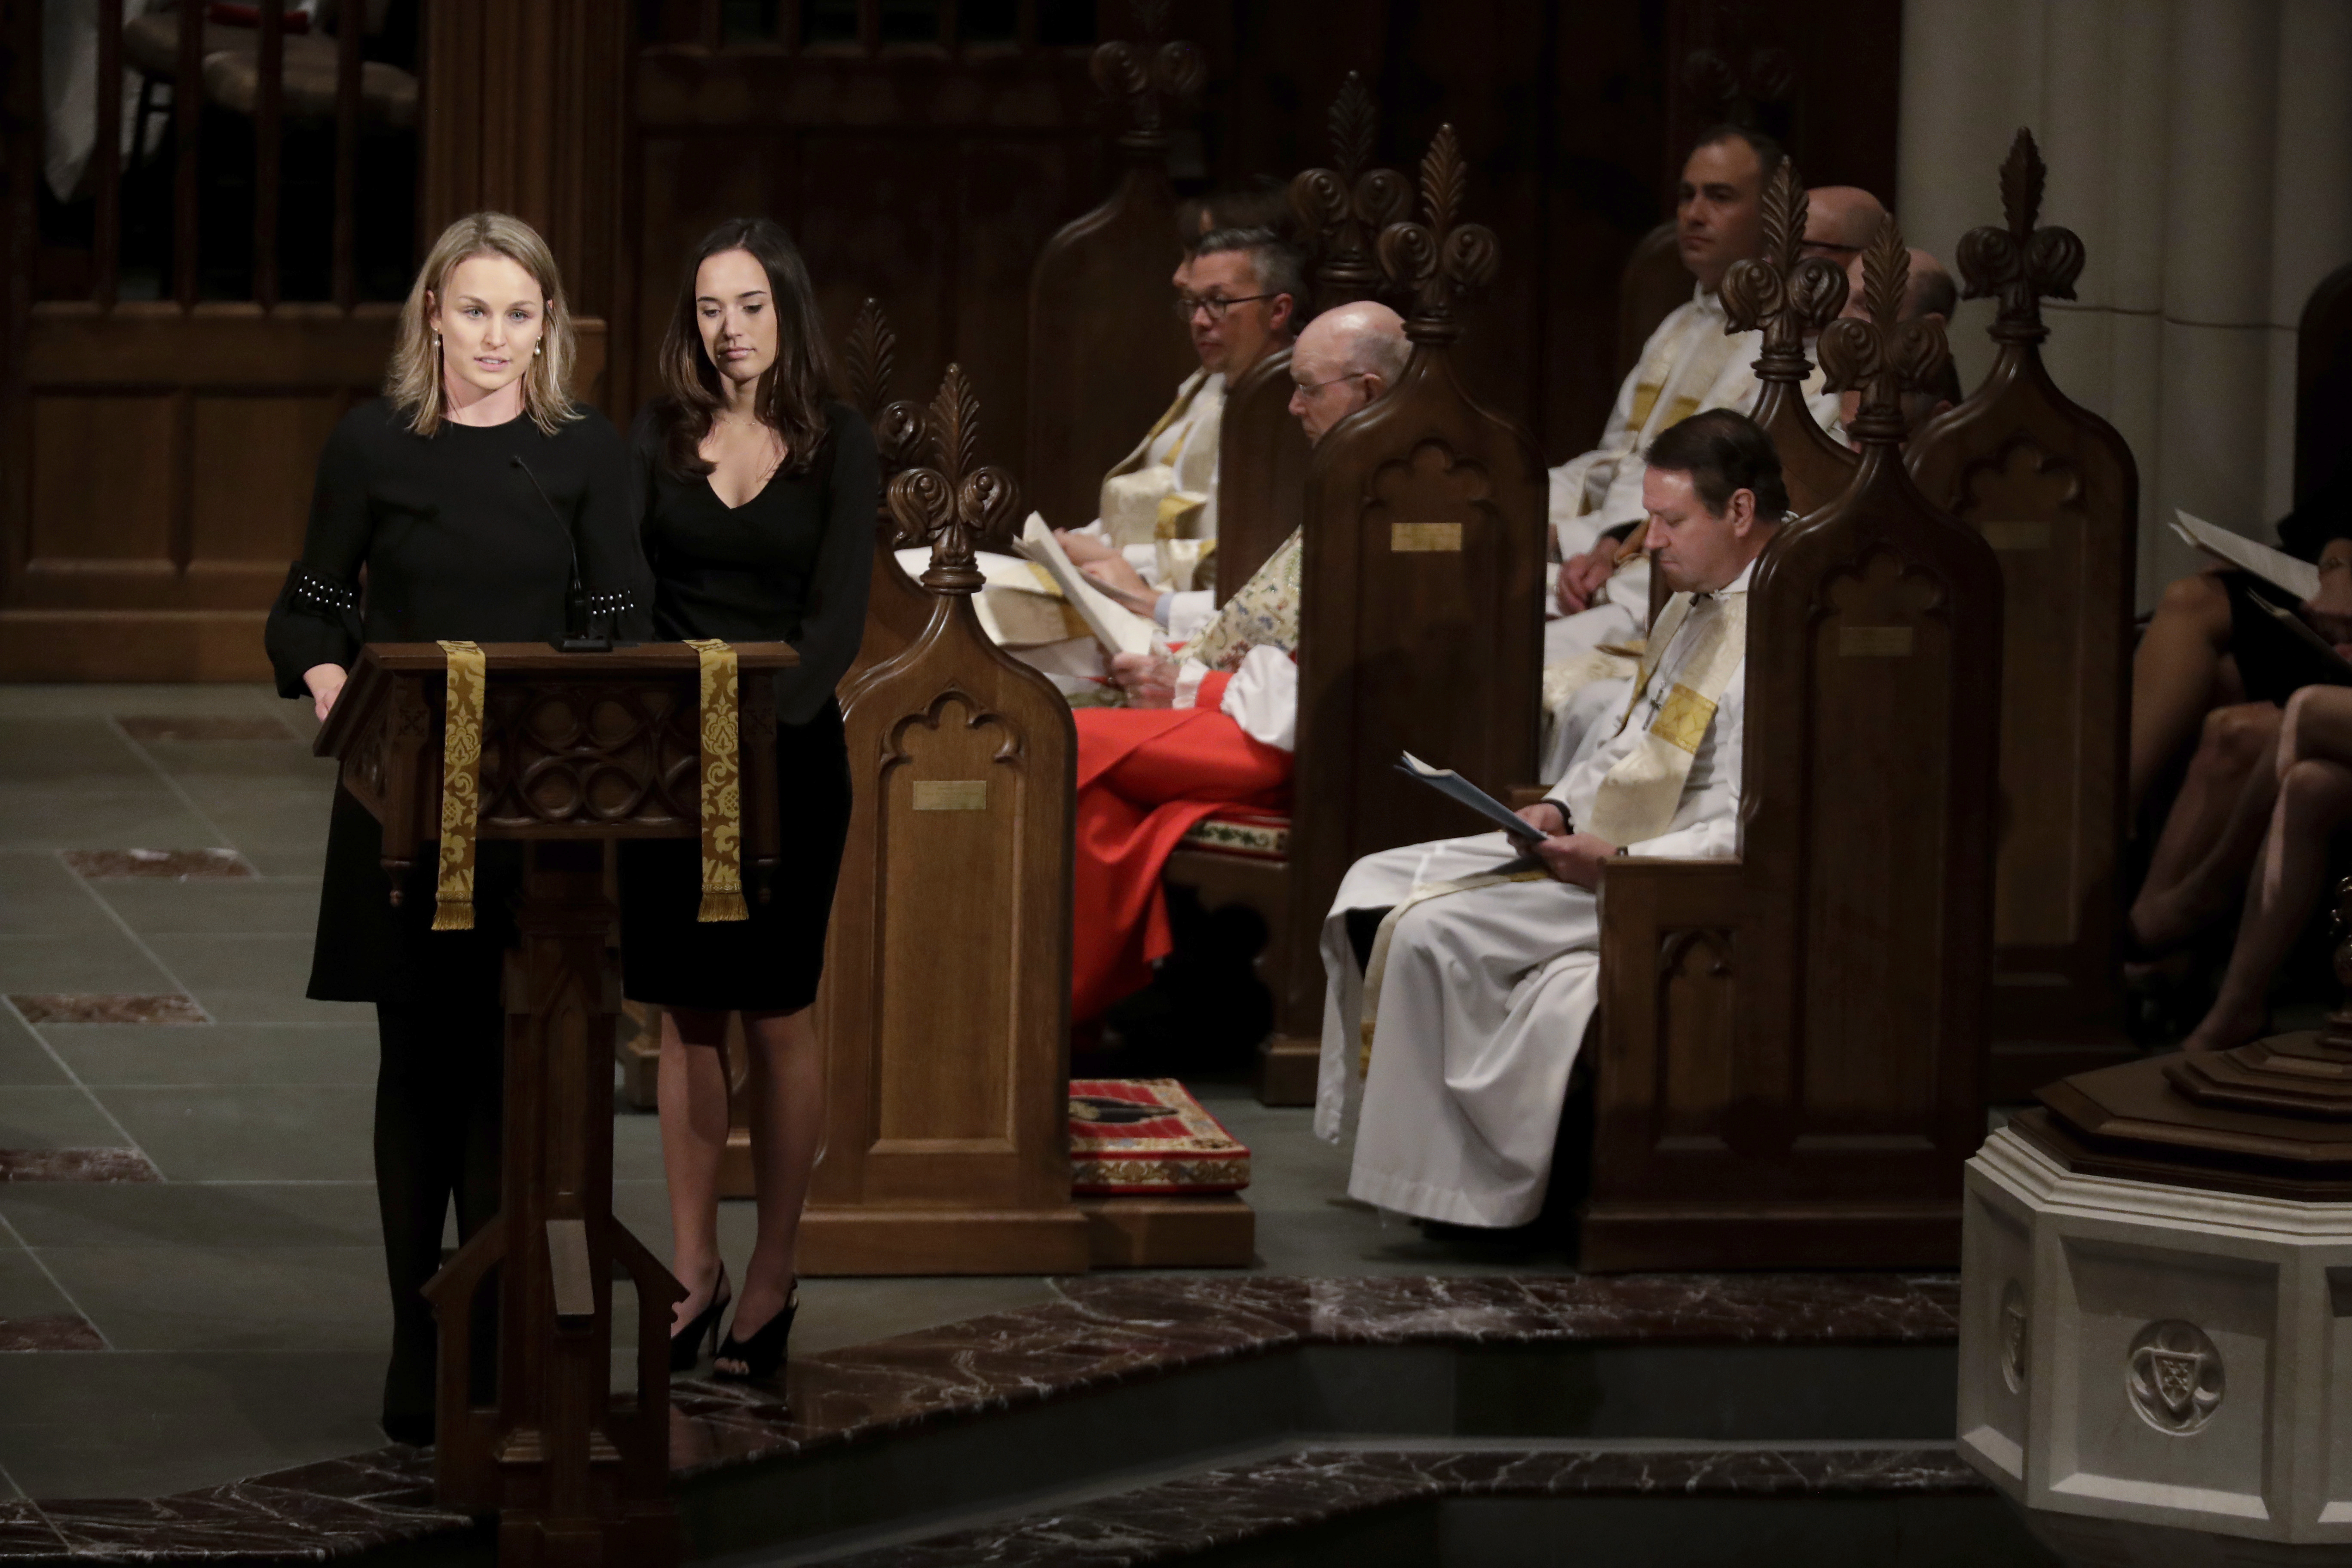 Granddaughters Nancy Ellis LeBlond Sosa, left, and Georgia Grace Koch, read scripture during a funeral for former President George H.W. Bush at St. Martin's Episcopal Church Thursday, Dec. 6, 2018, in Houston. (AP Photo/Mark Humphrey)